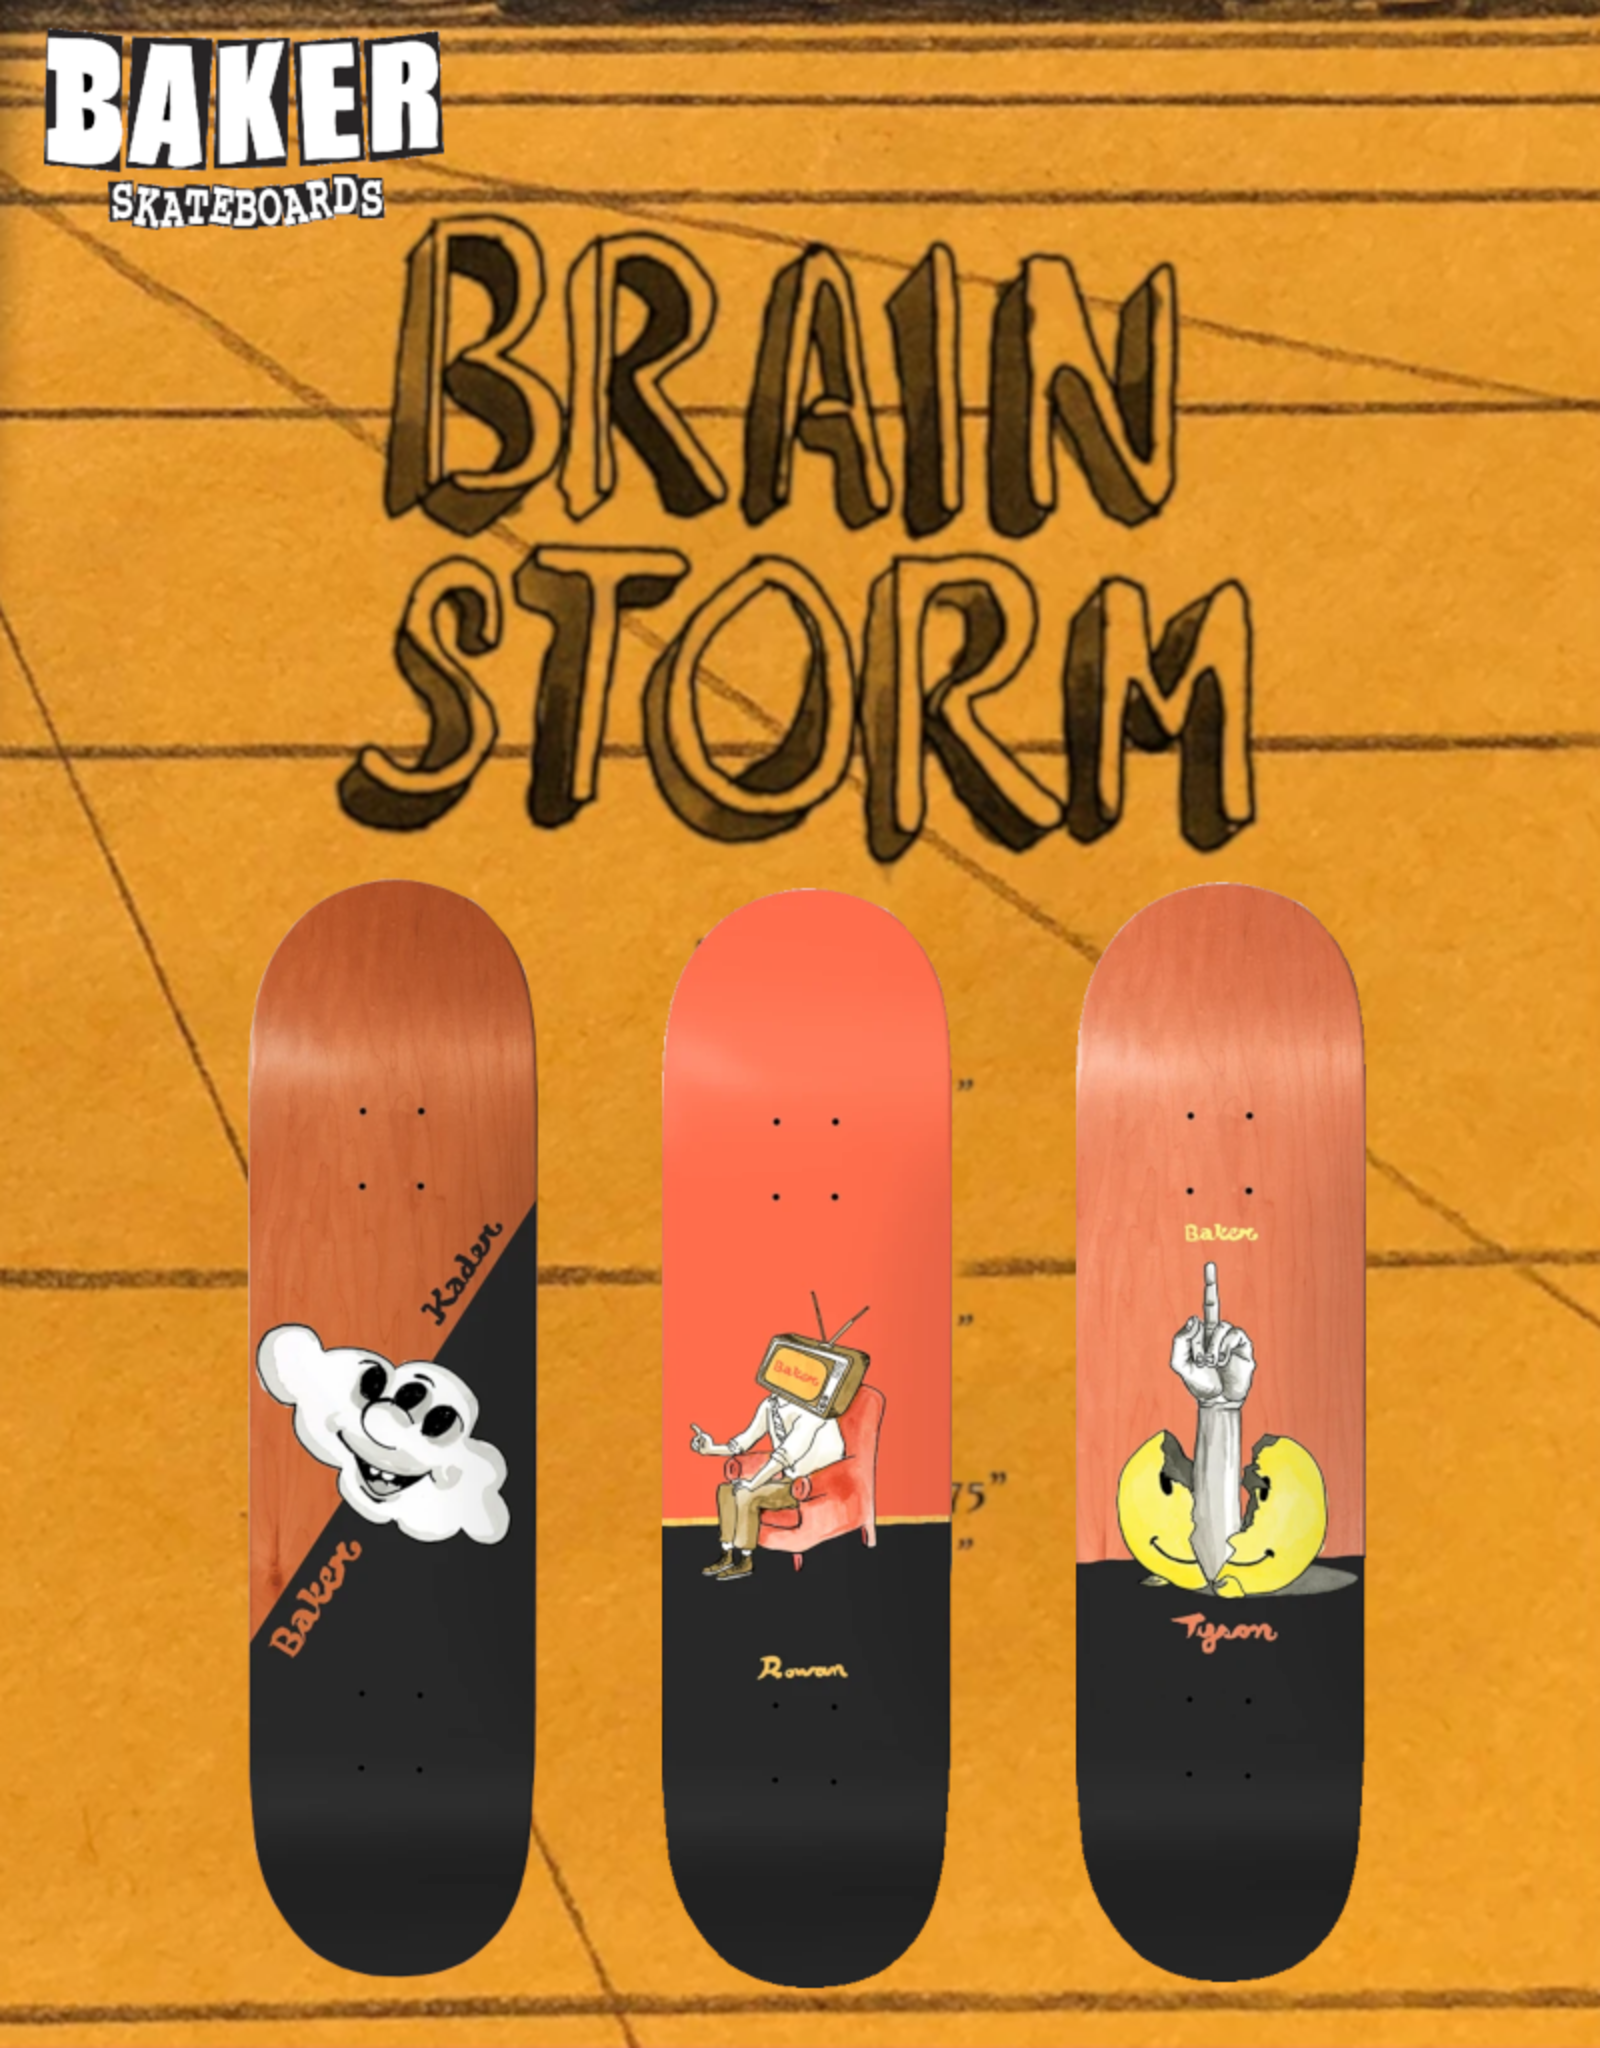 BAKER SKATEBOARDS BAKER - Brainstorm PRO Model Decks - Tyson, Kader & Rowan